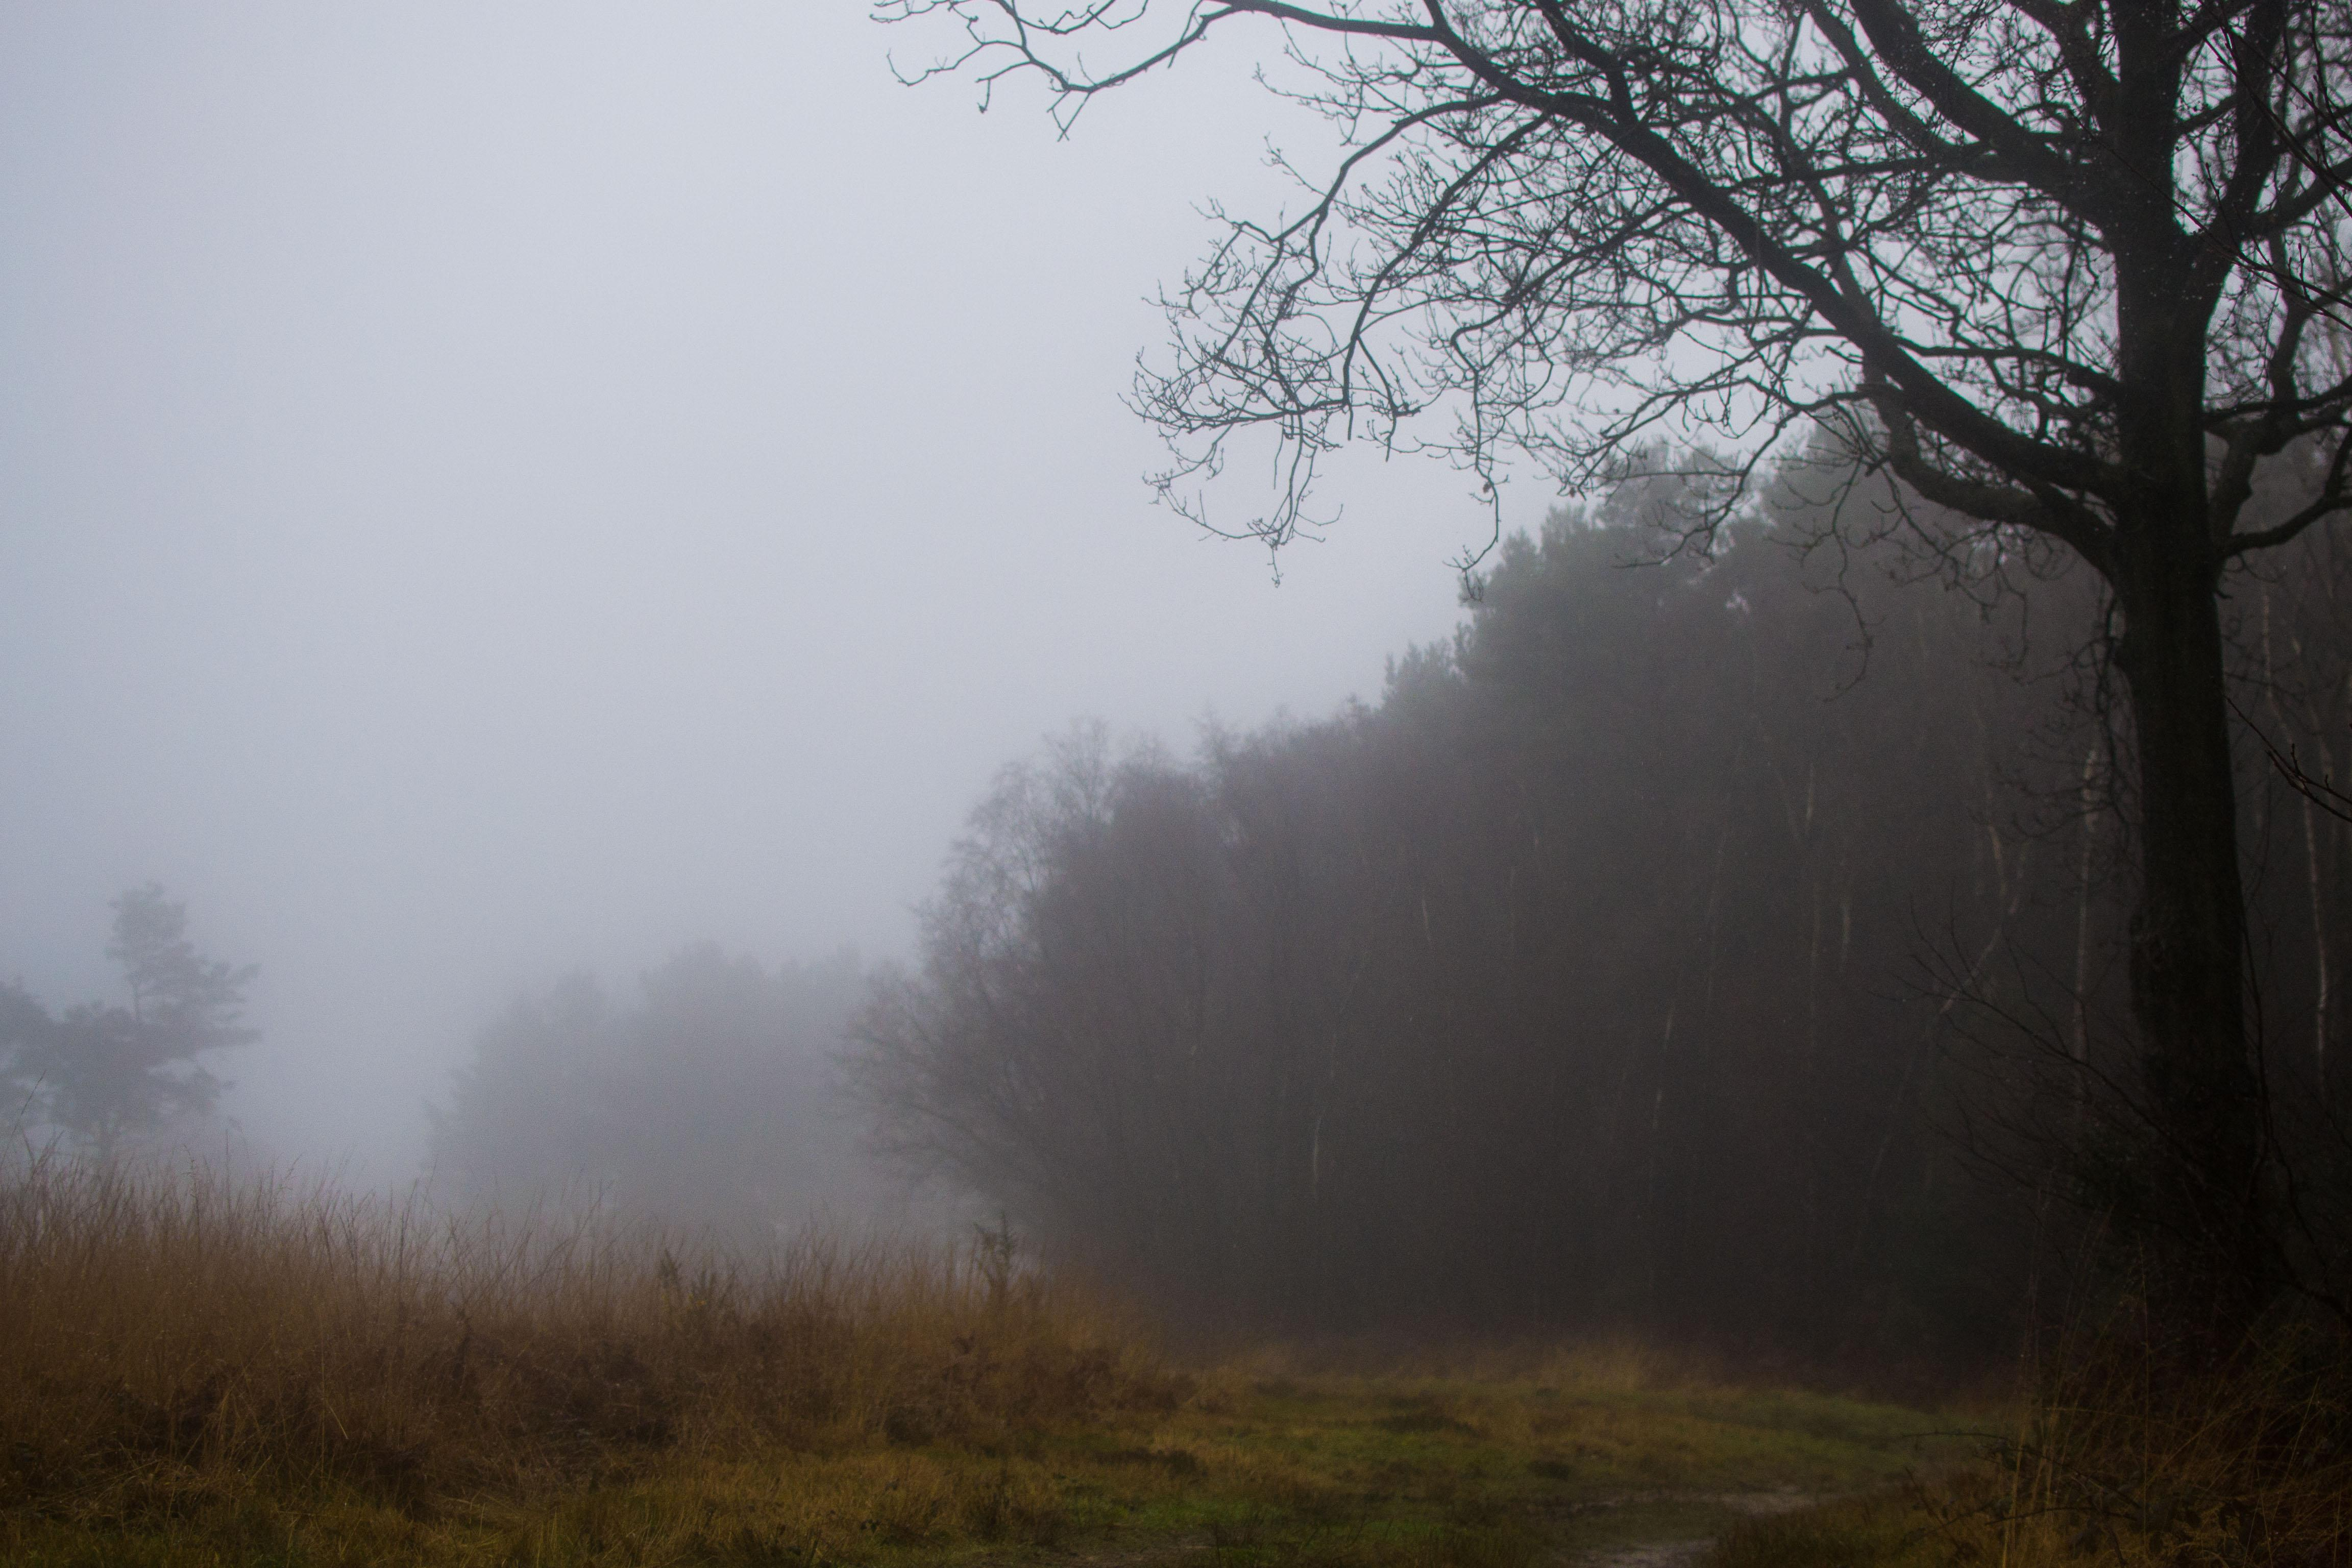 Misty Forest  - image 1 - student project